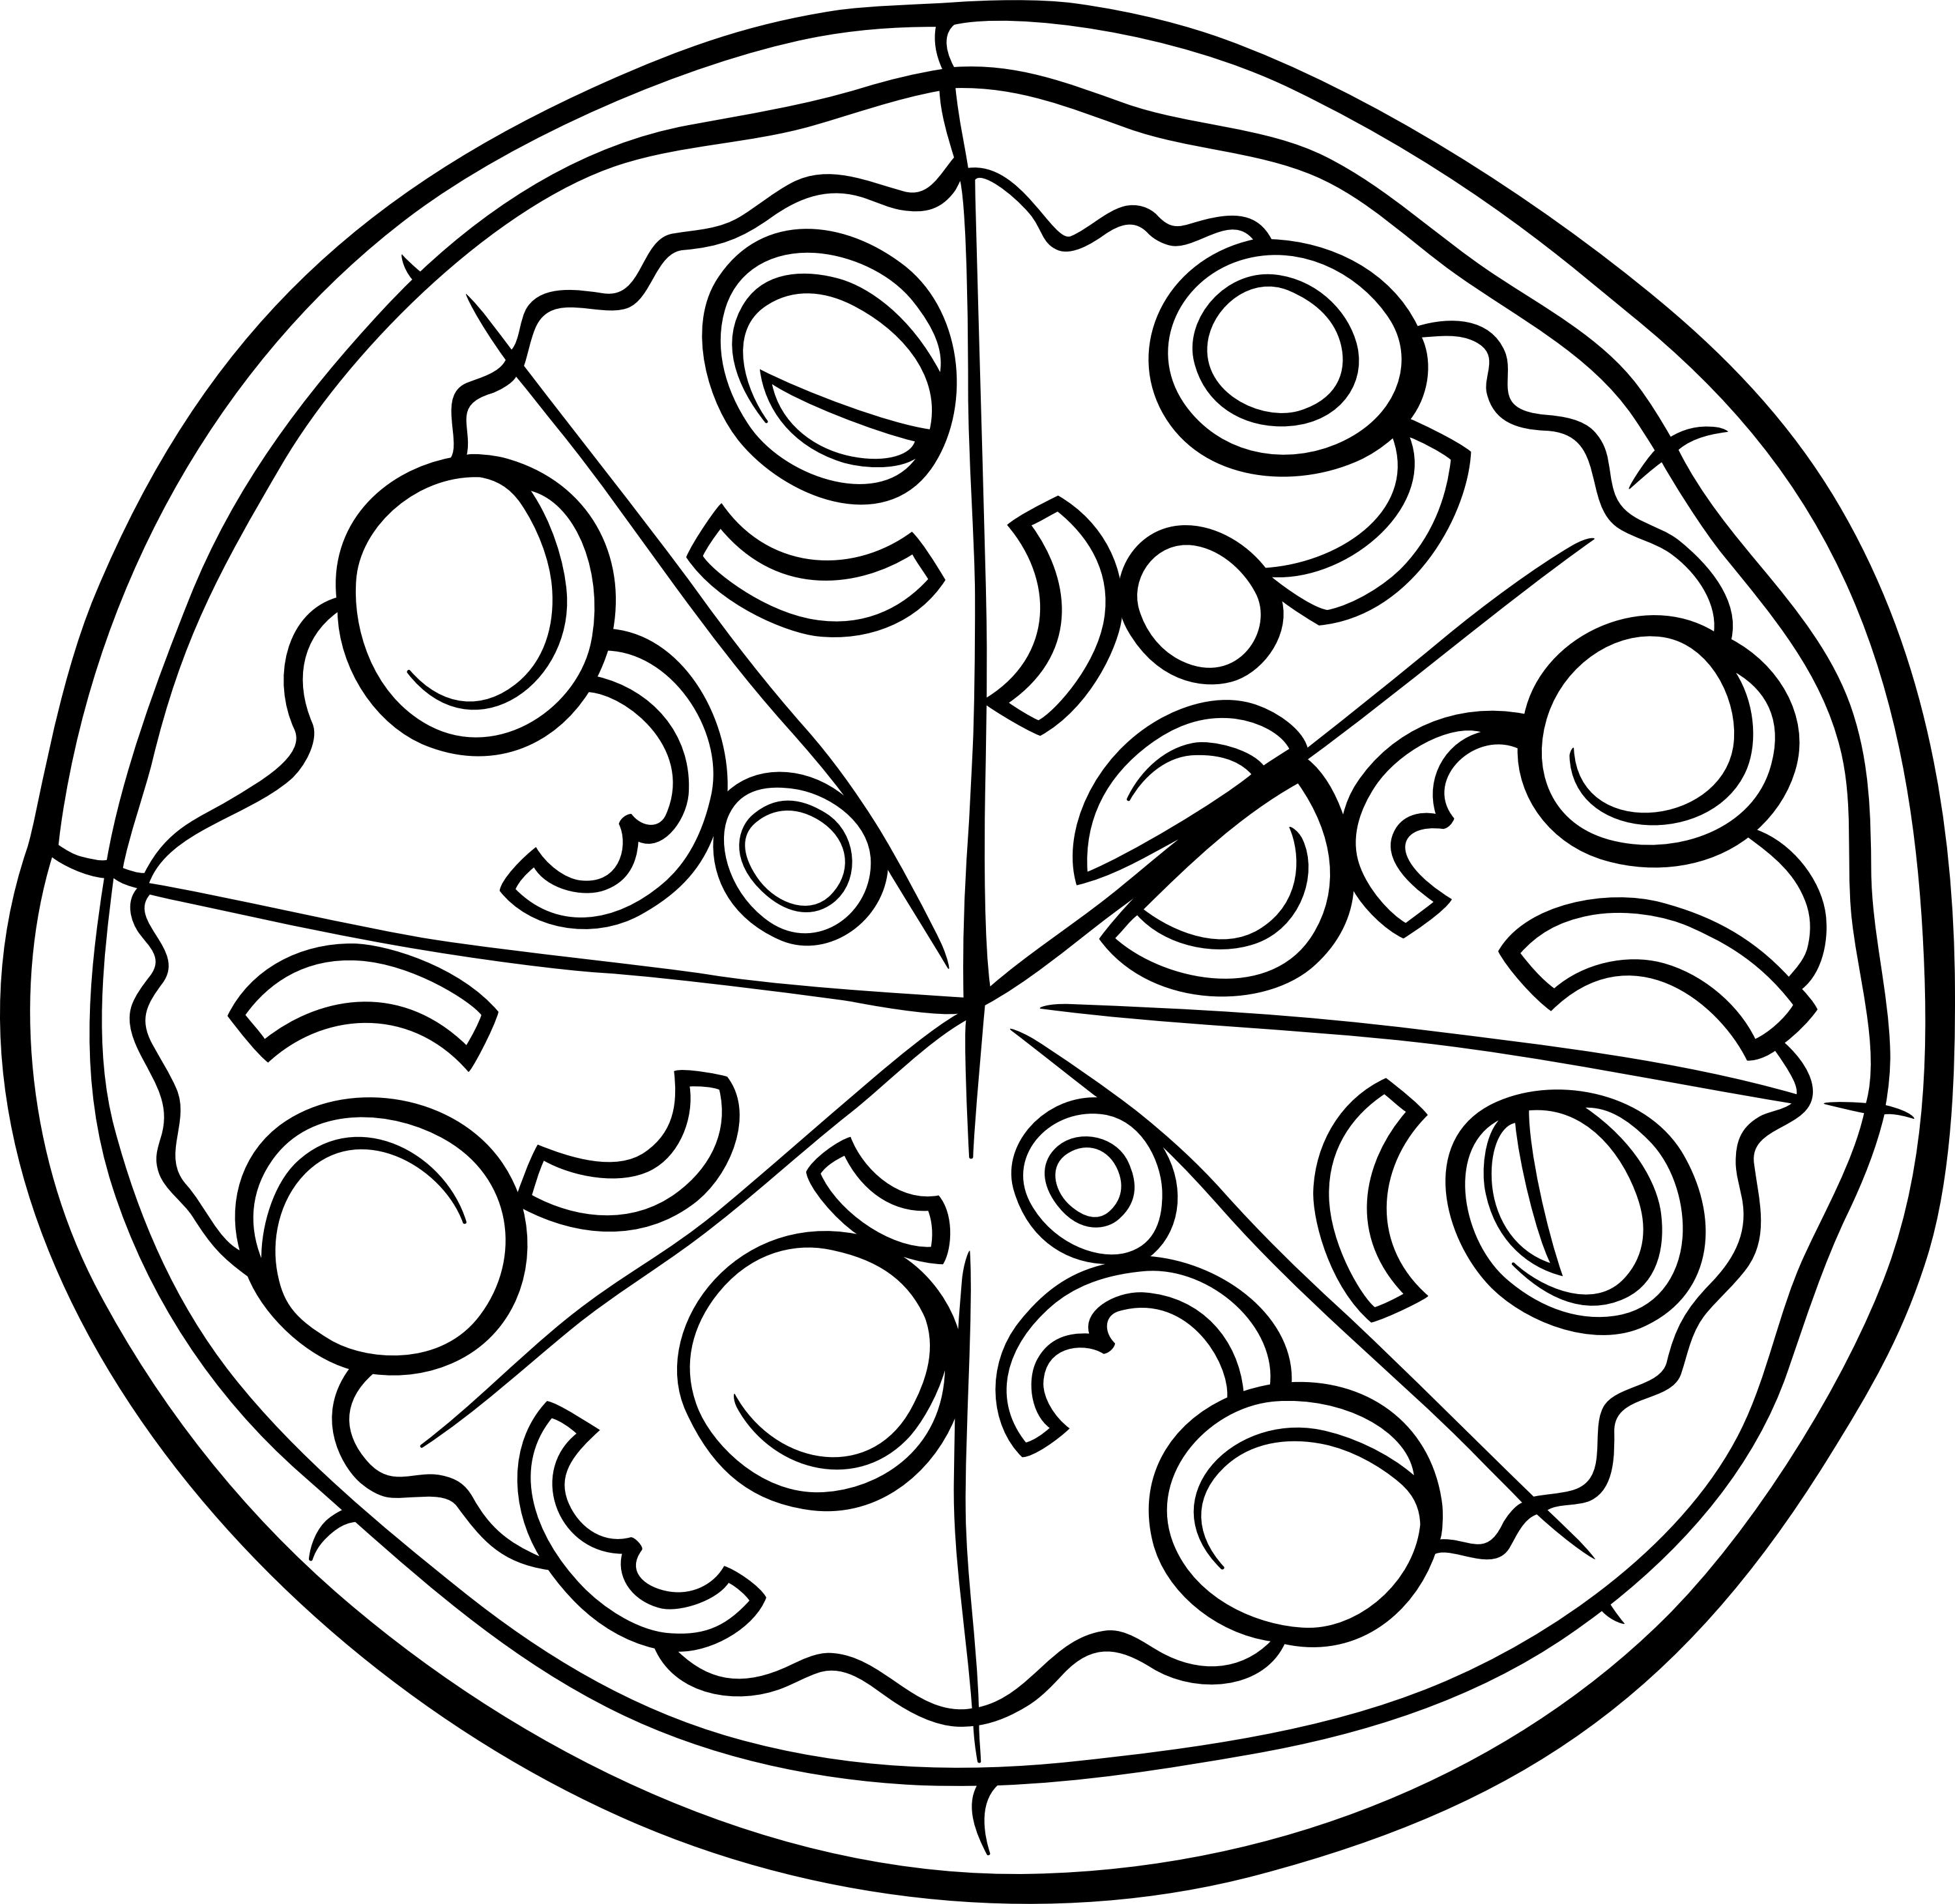 Free Coloring Pages Of Pizza Clipart Coloring Pages Pizza